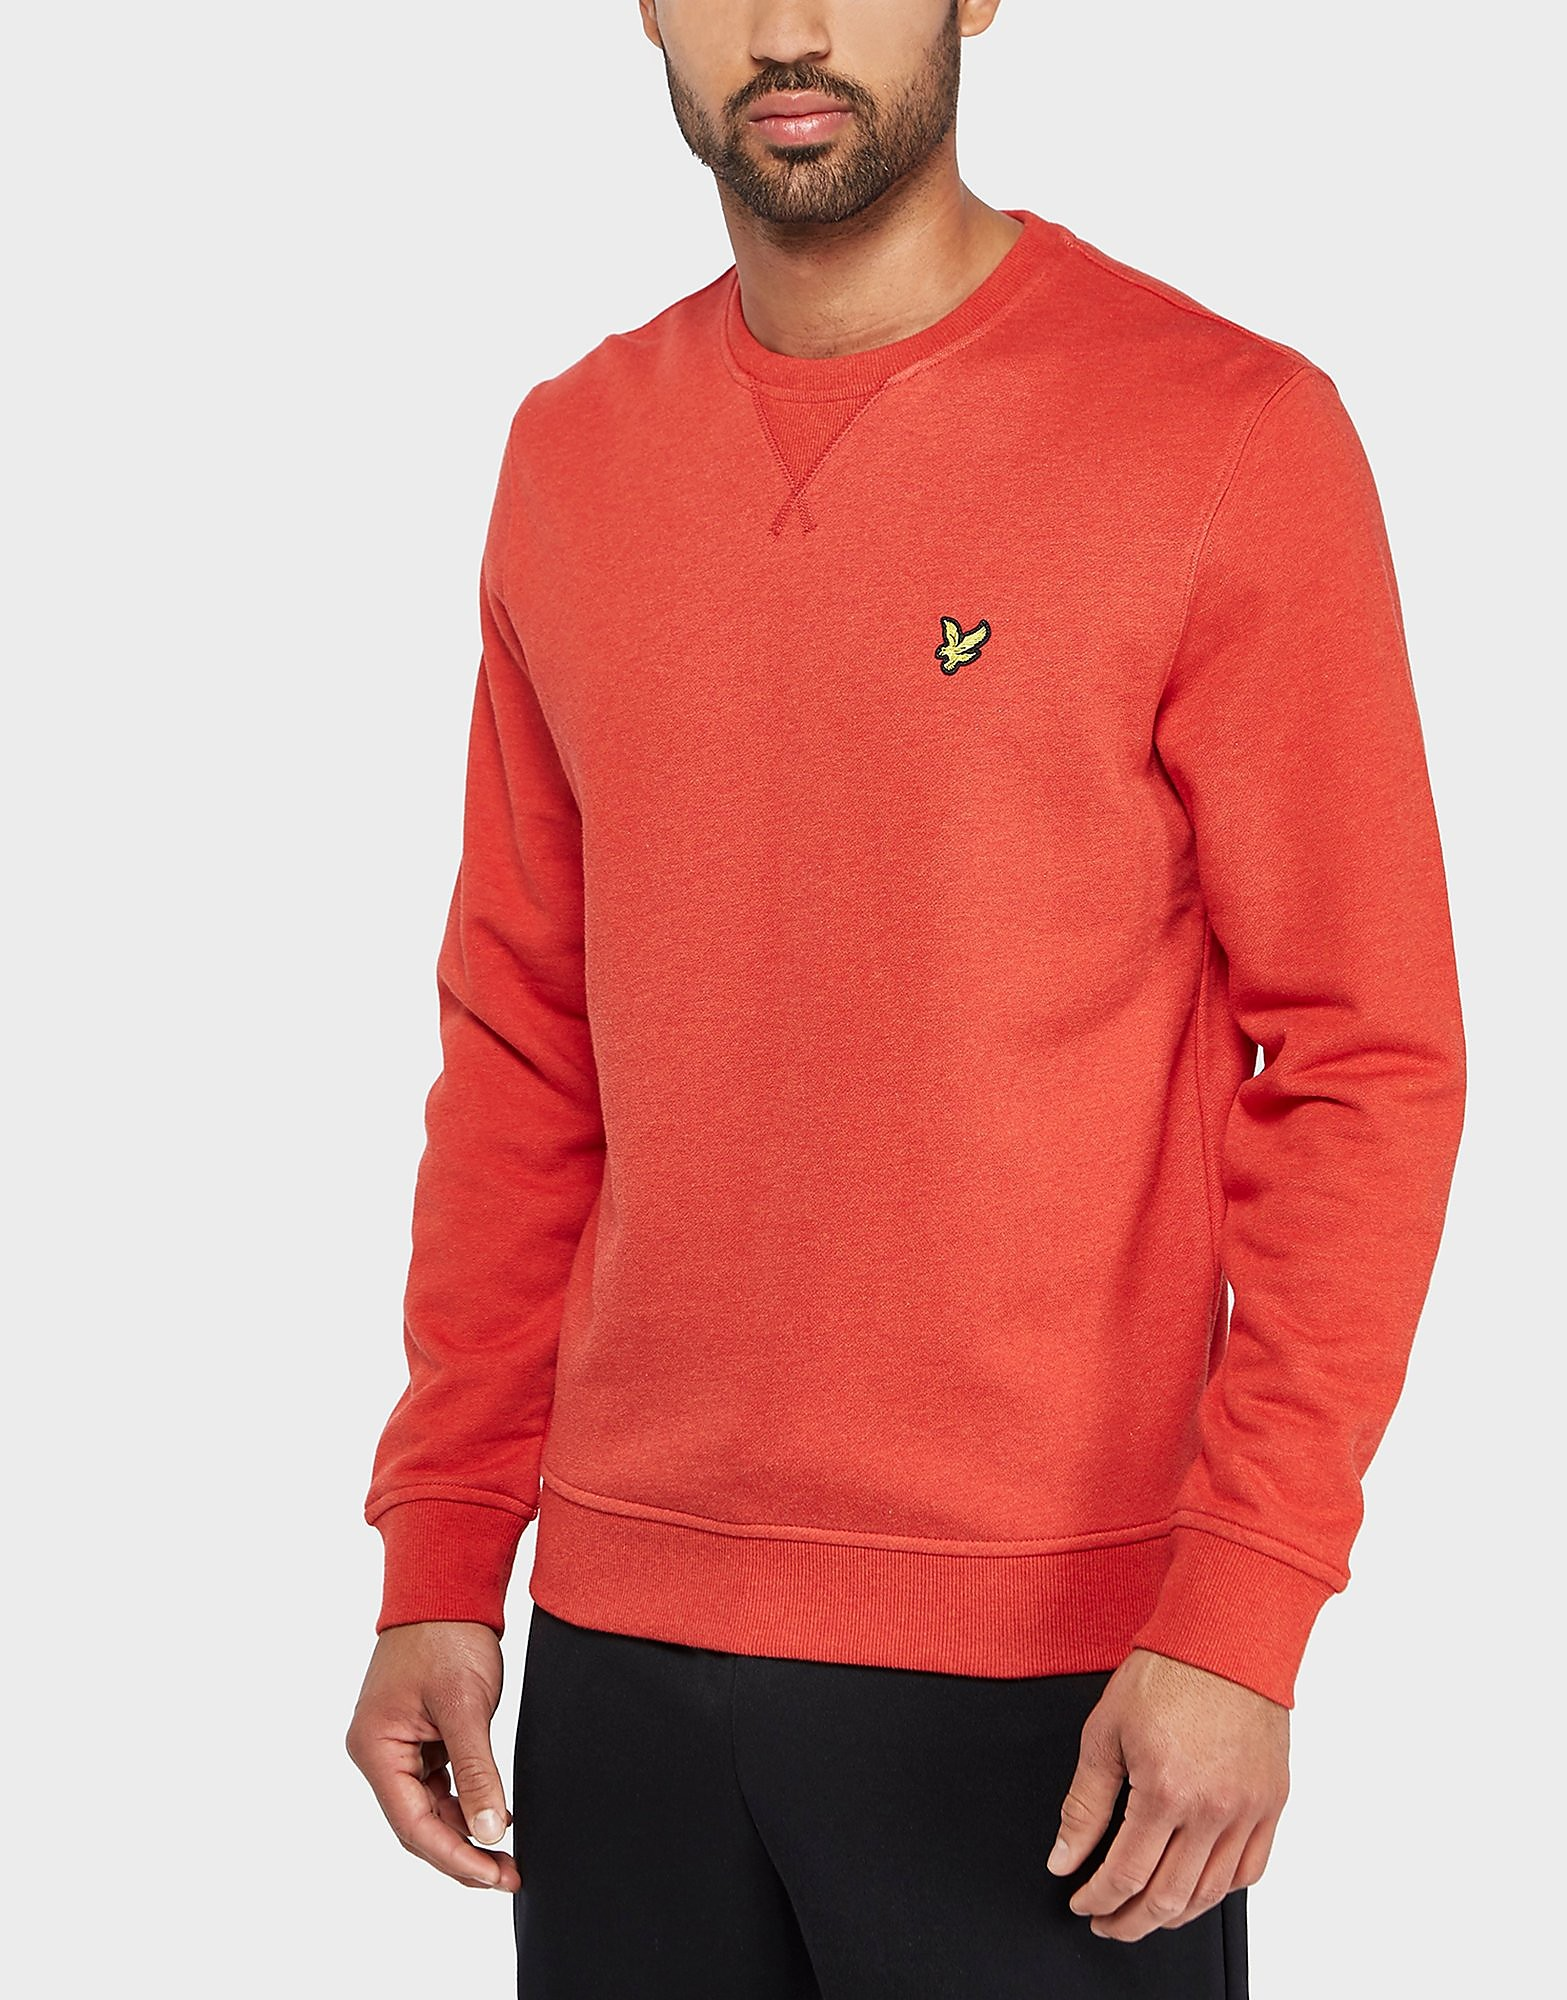 Lyle & Scott Casic Crew Sweatshirt